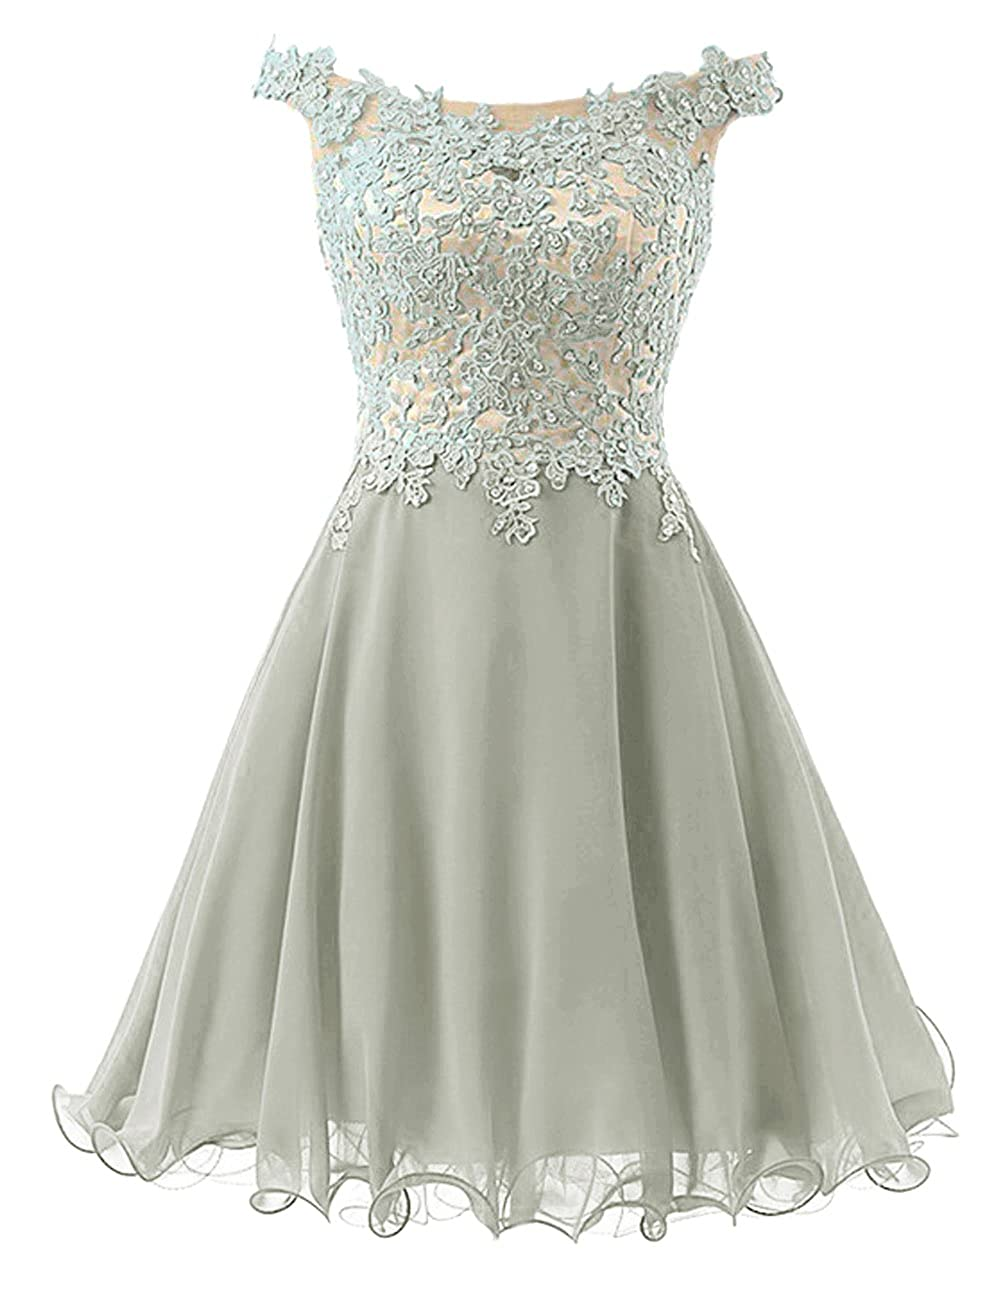 Homecoming Dresses Short Prom Dress Chiffon Cocktail Party Gowns for JuniorAppliques Beaded